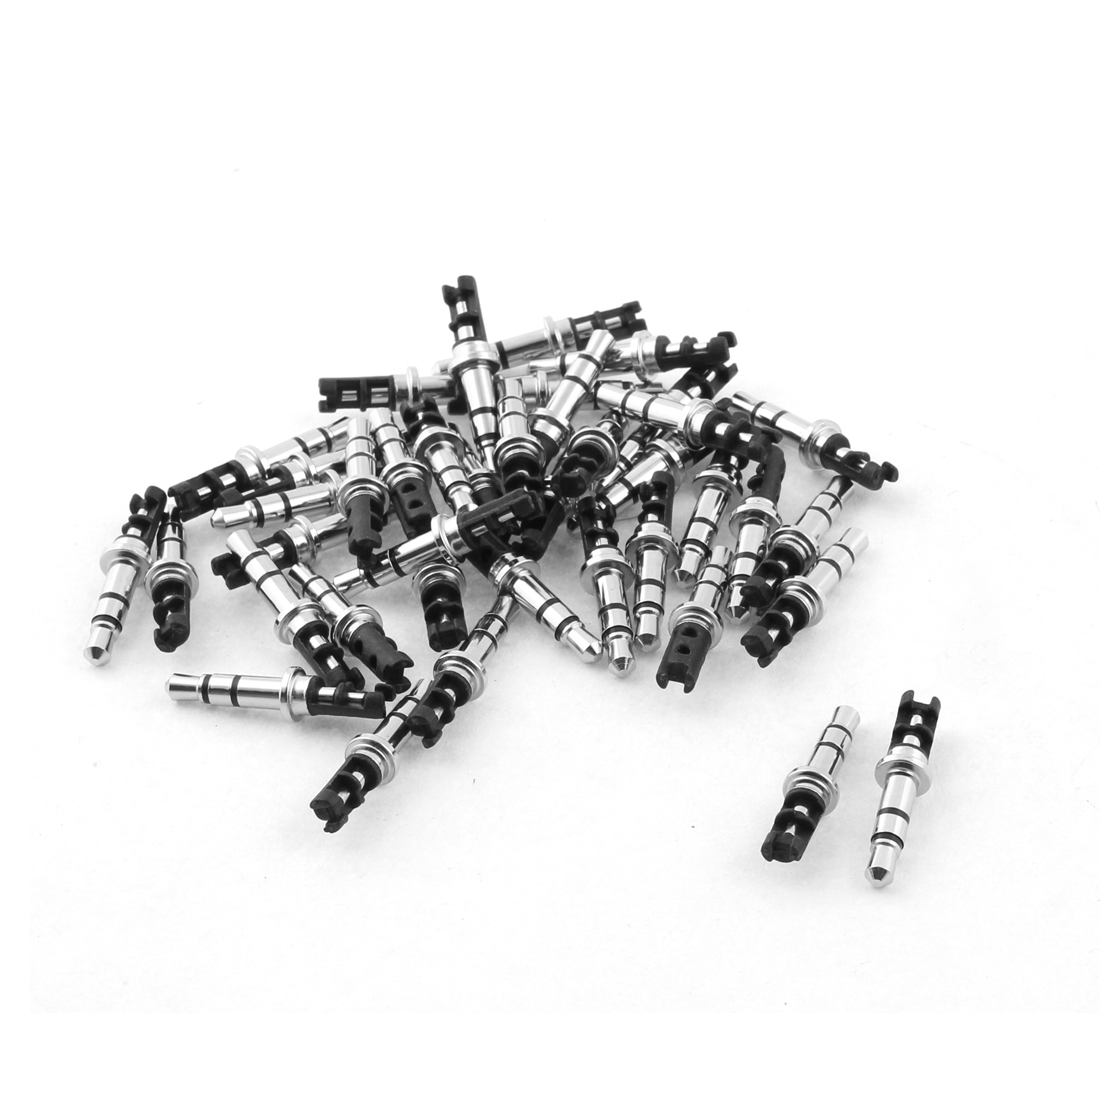 3.5mm Stereo Male Repair Audio Headphone Jack Solder Connector Black 40pcs